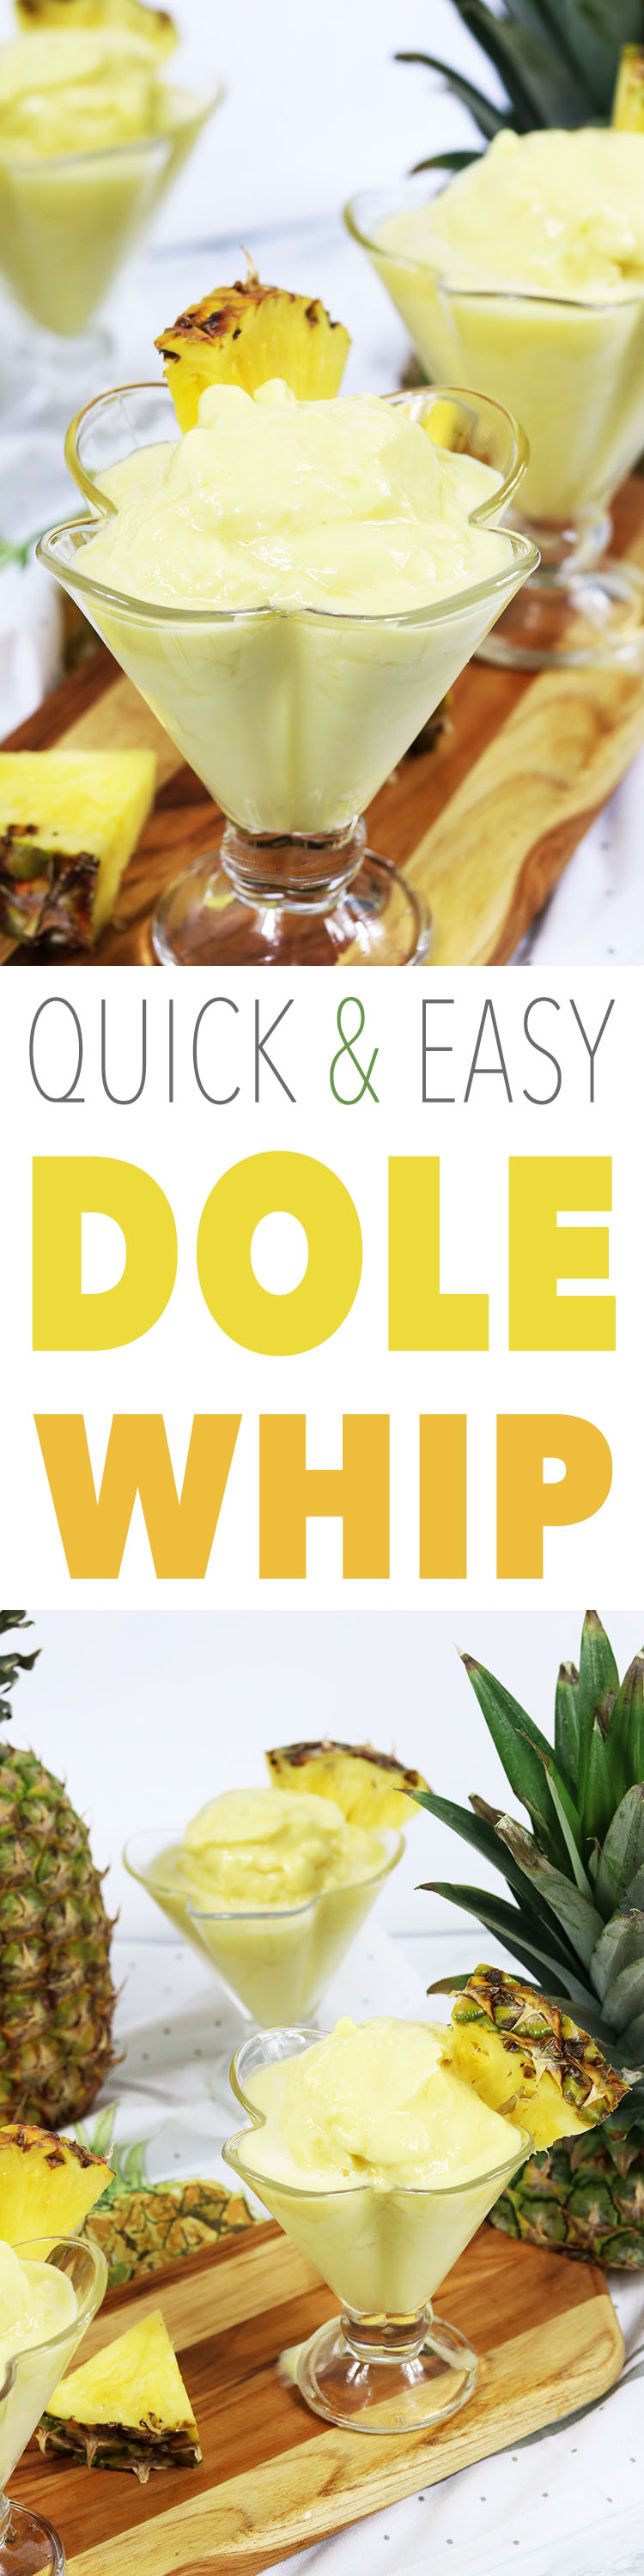 This quick and easy dole whip recipe is bursting with pineapple flavors.